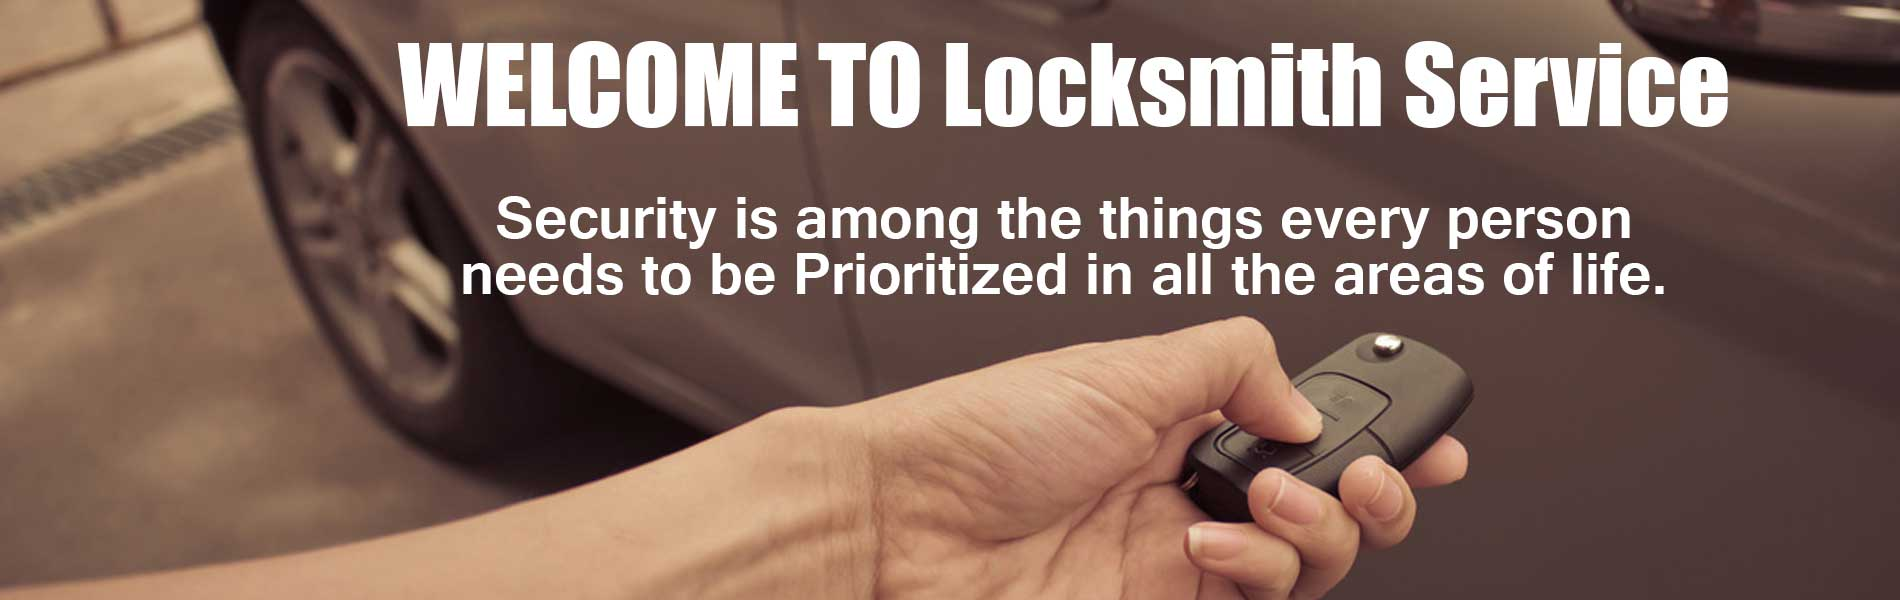 West New York Locksmith Store West New York, NJ 201-367-1766